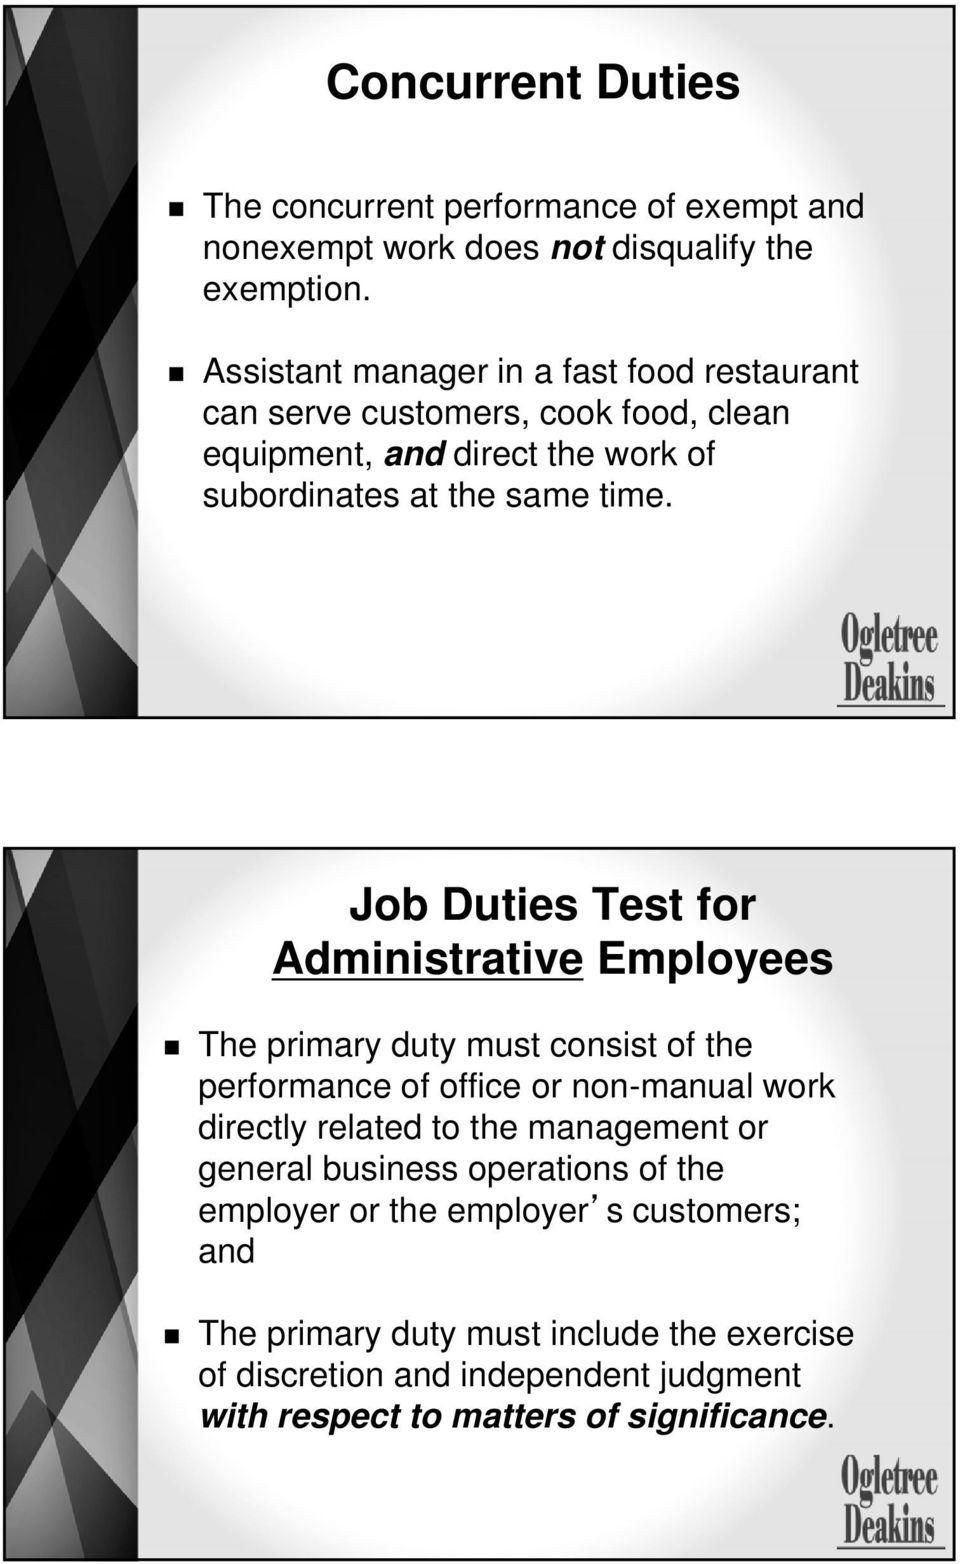 Job Duties Test for Administrative Employees The primary duty must consist of the performance of office or non-manual work directly related to the